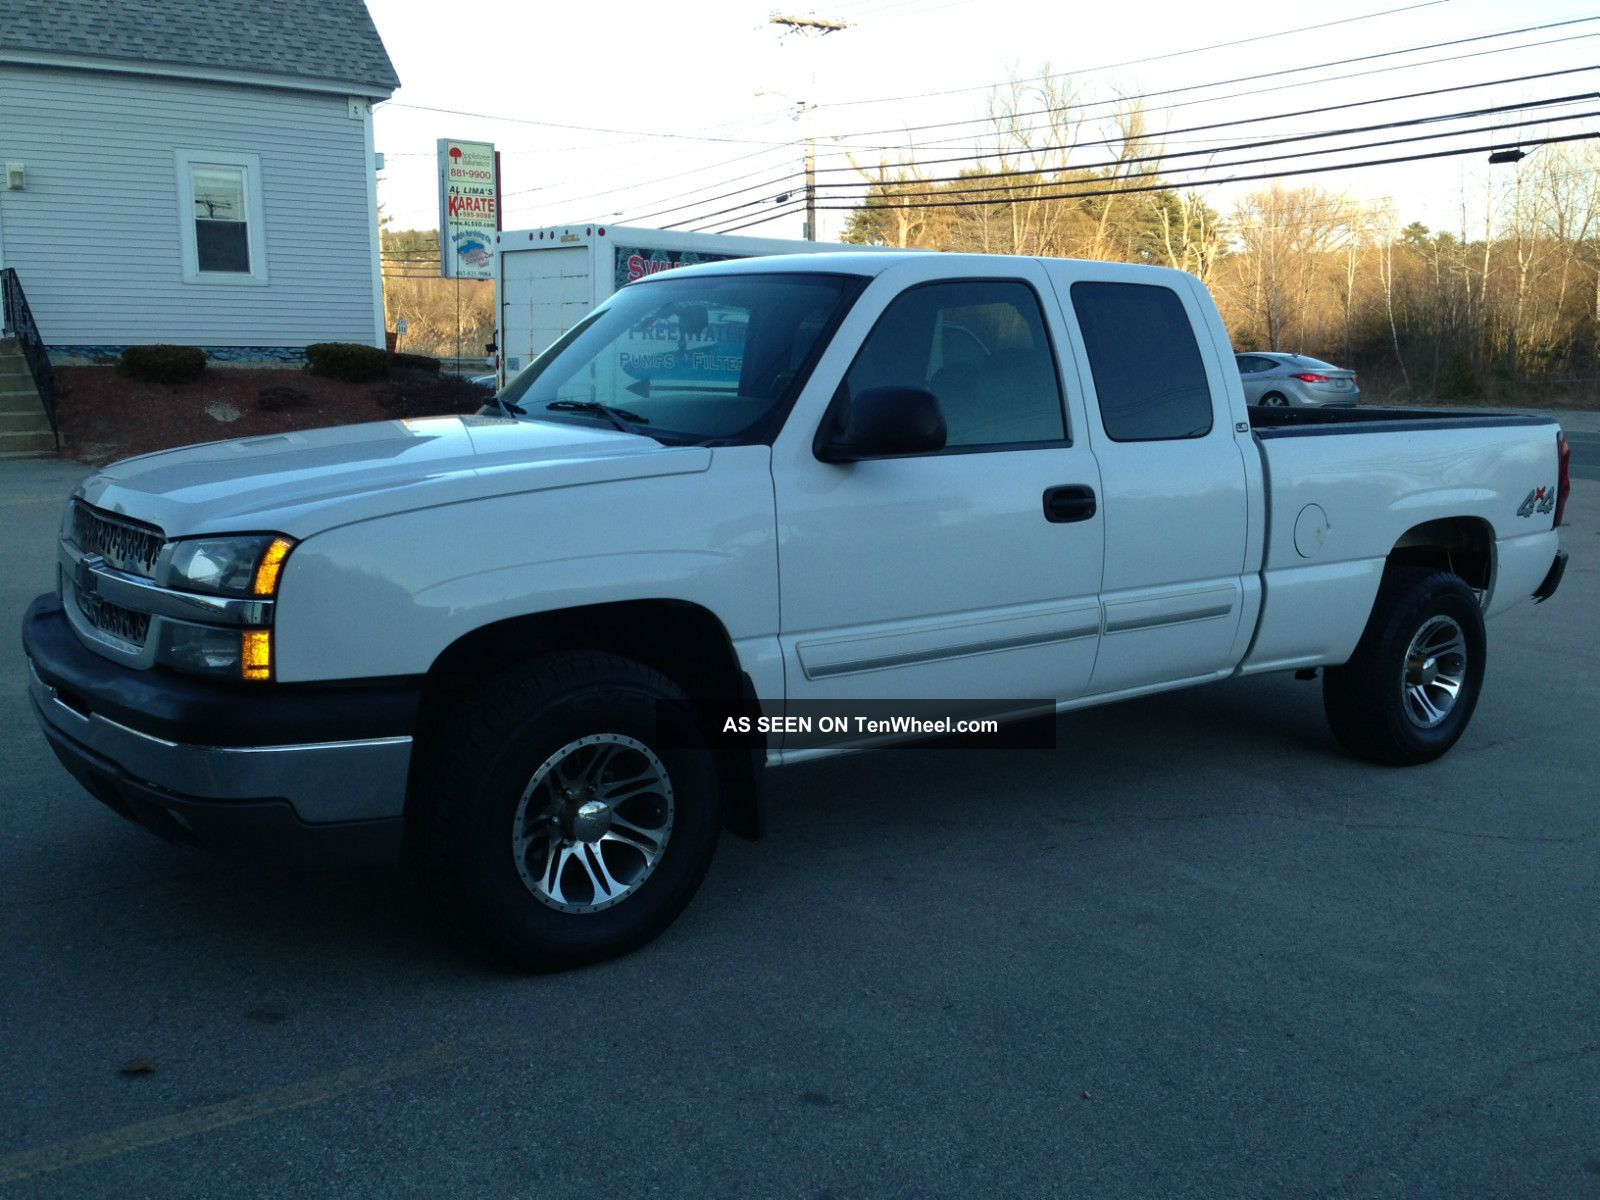 2004 chevrolet silverado 1500 ls extended cab pickup 4 door 4 8l. Black Bedroom Furniture Sets. Home Design Ideas